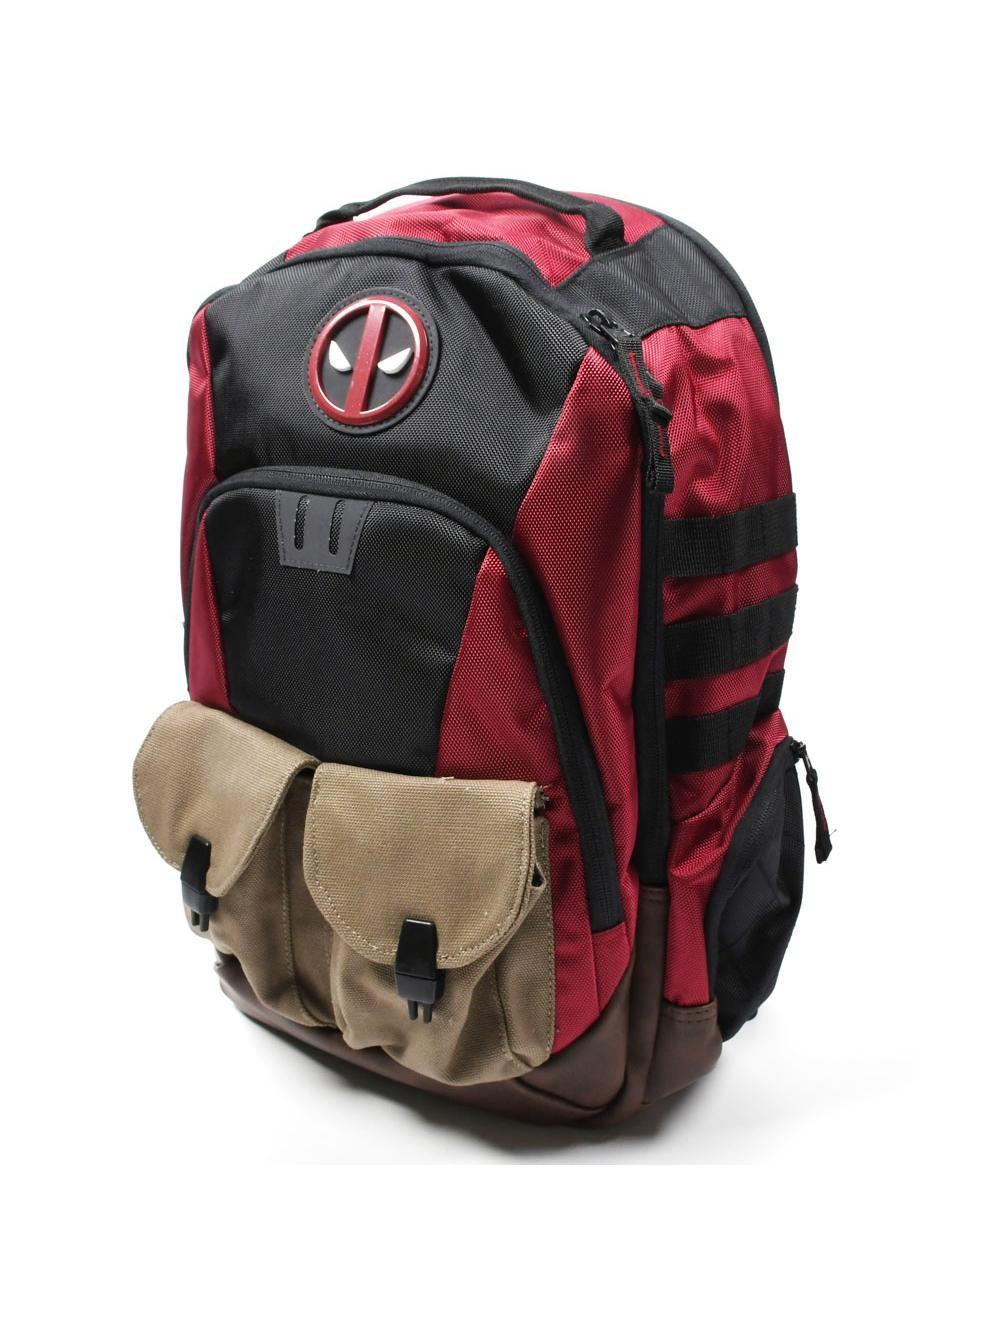 DEADPOOL - Built Up Combat Ready Backpack